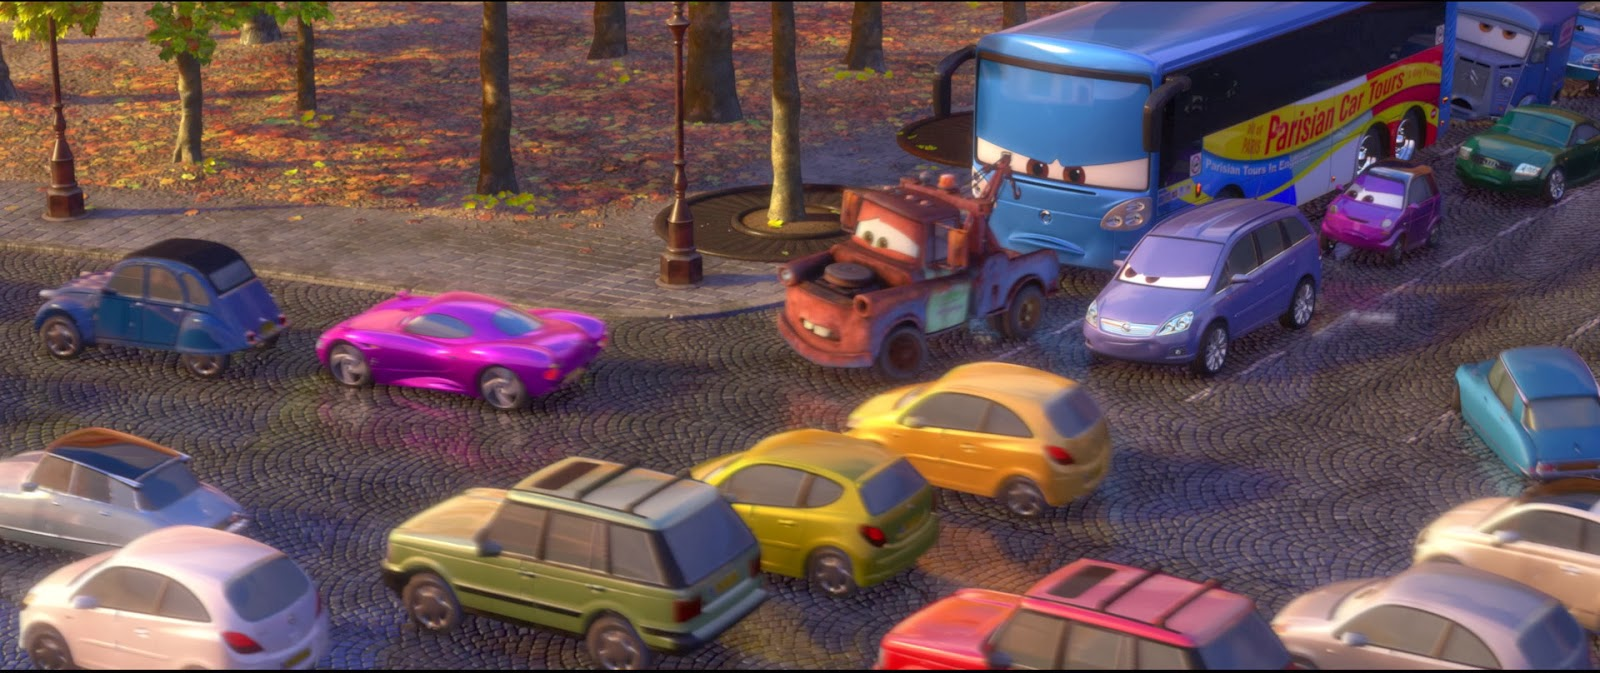 dan the pixar fan cars 2 emmanuel paris bus. Black Bedroom Furniture Sets. Home Design Ideas